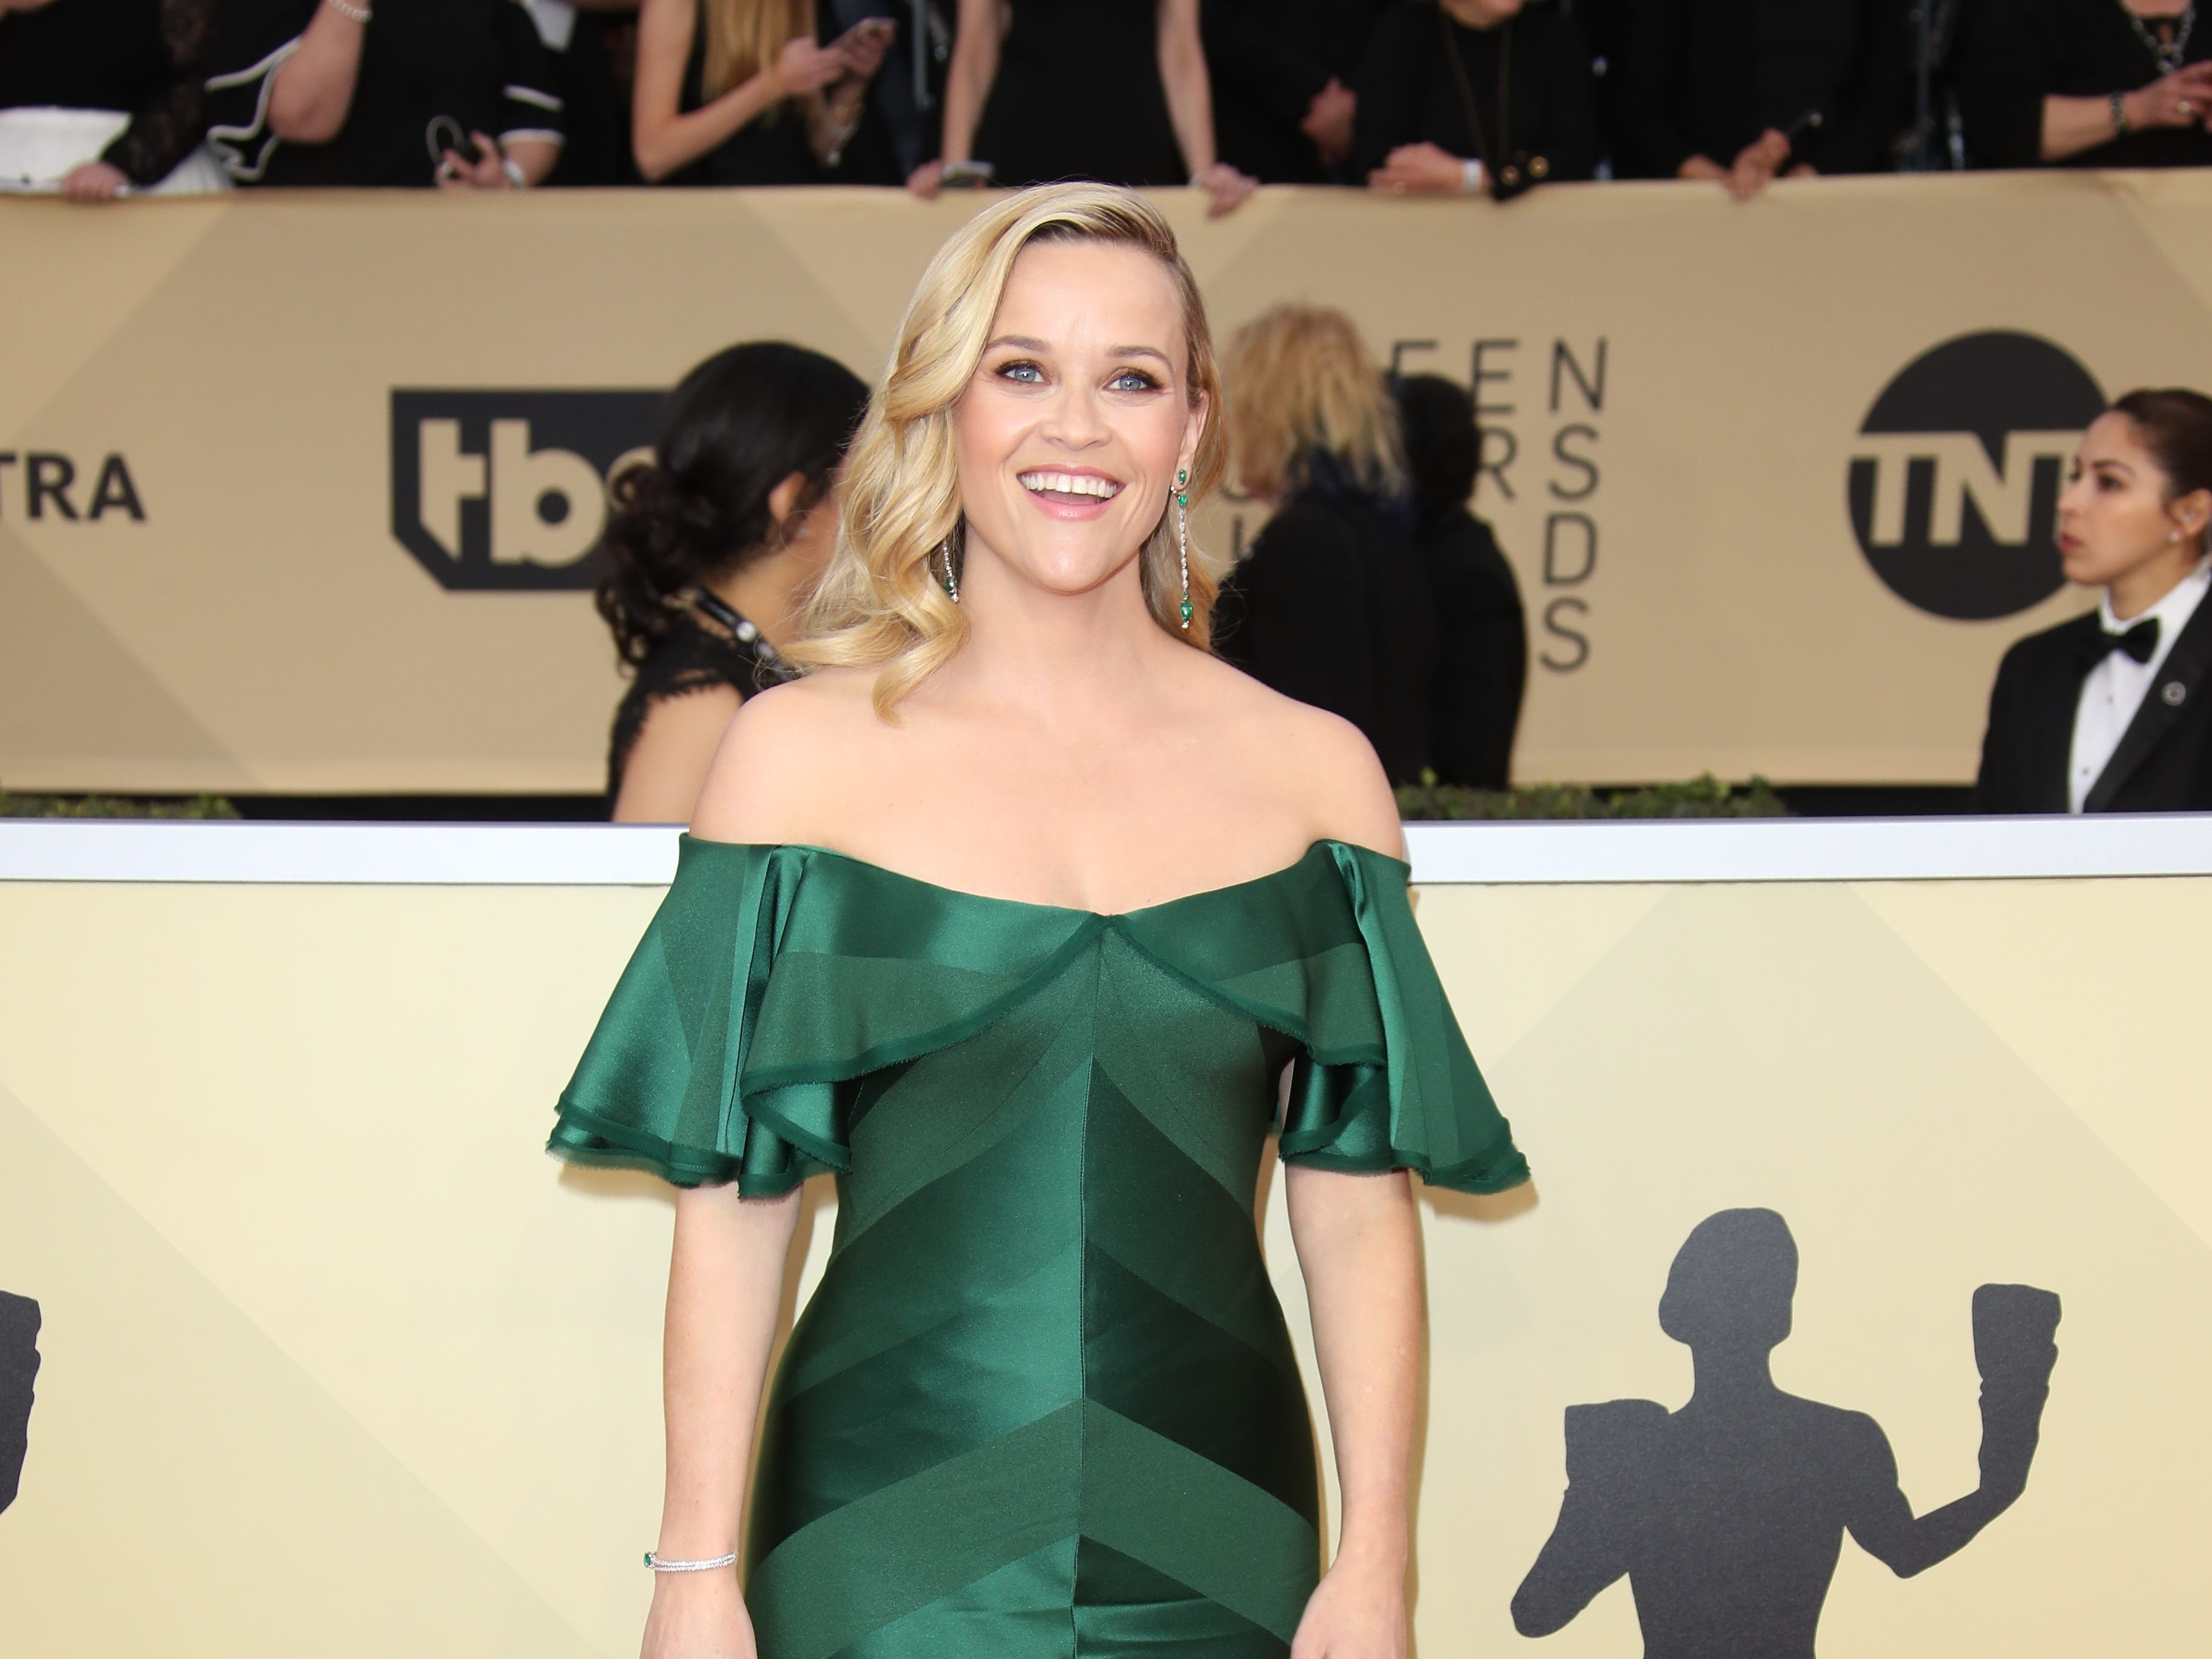 Jan 21, 2018; Los Angeles, CA, USA; Reese Witherspoon arrives at the 24th annual Screen Actors Guild Awards at the Shrine Auditorium. Mandatory Credit: Dan MacMedan-USA TODAY NETWORK (Via OlyDrop)